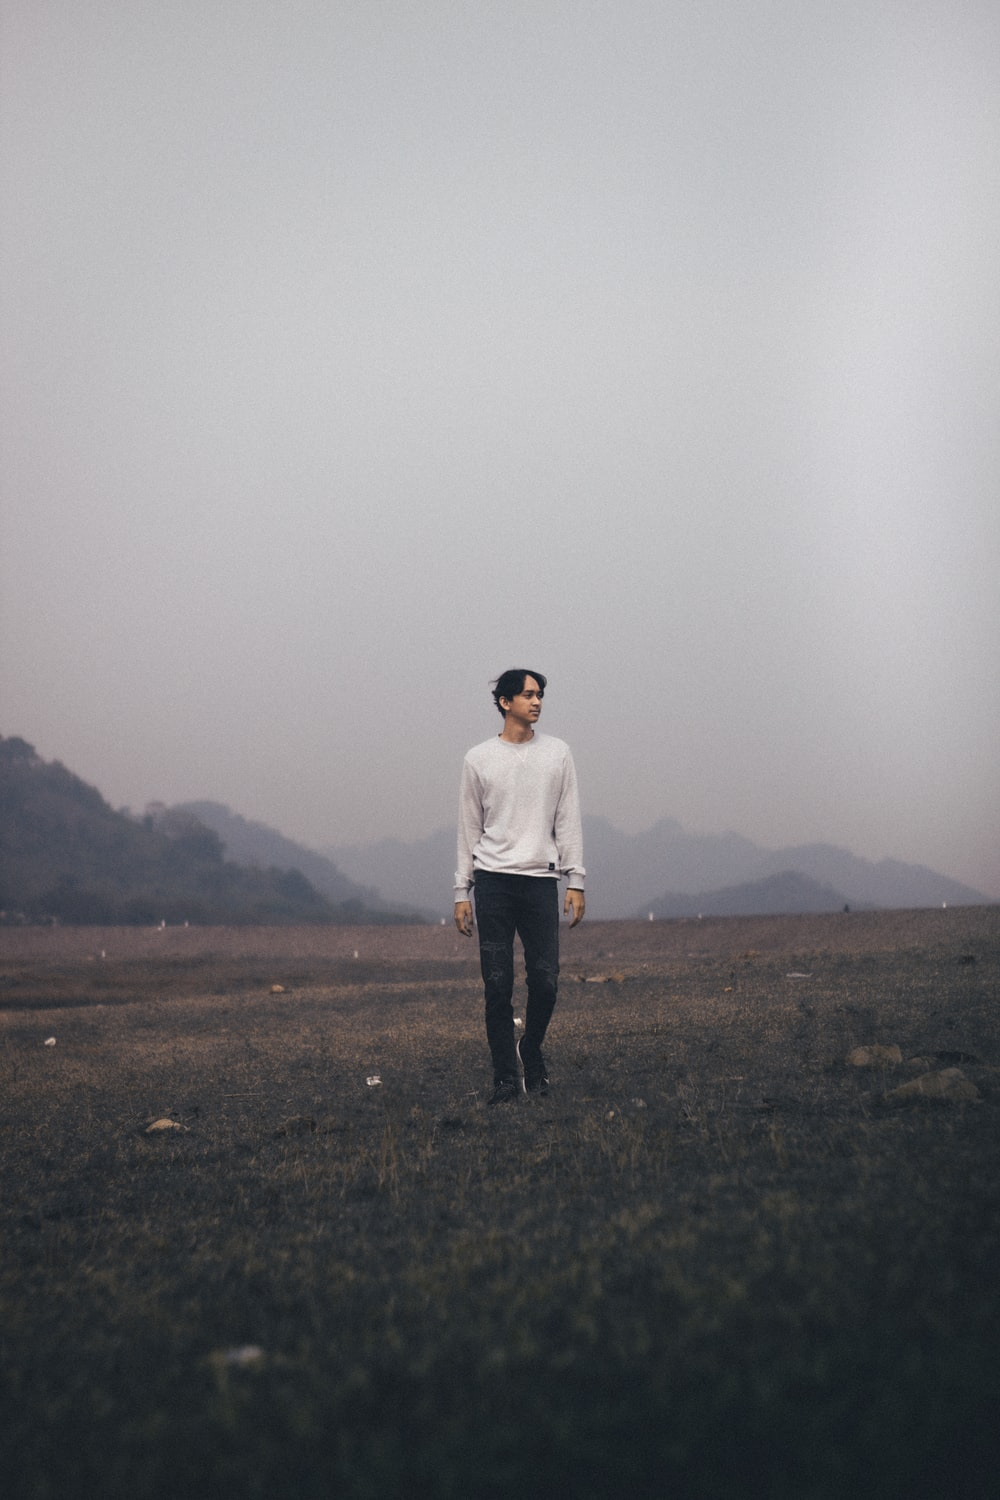 man in white long sleeve shirt standing on green grass field during foggy weather